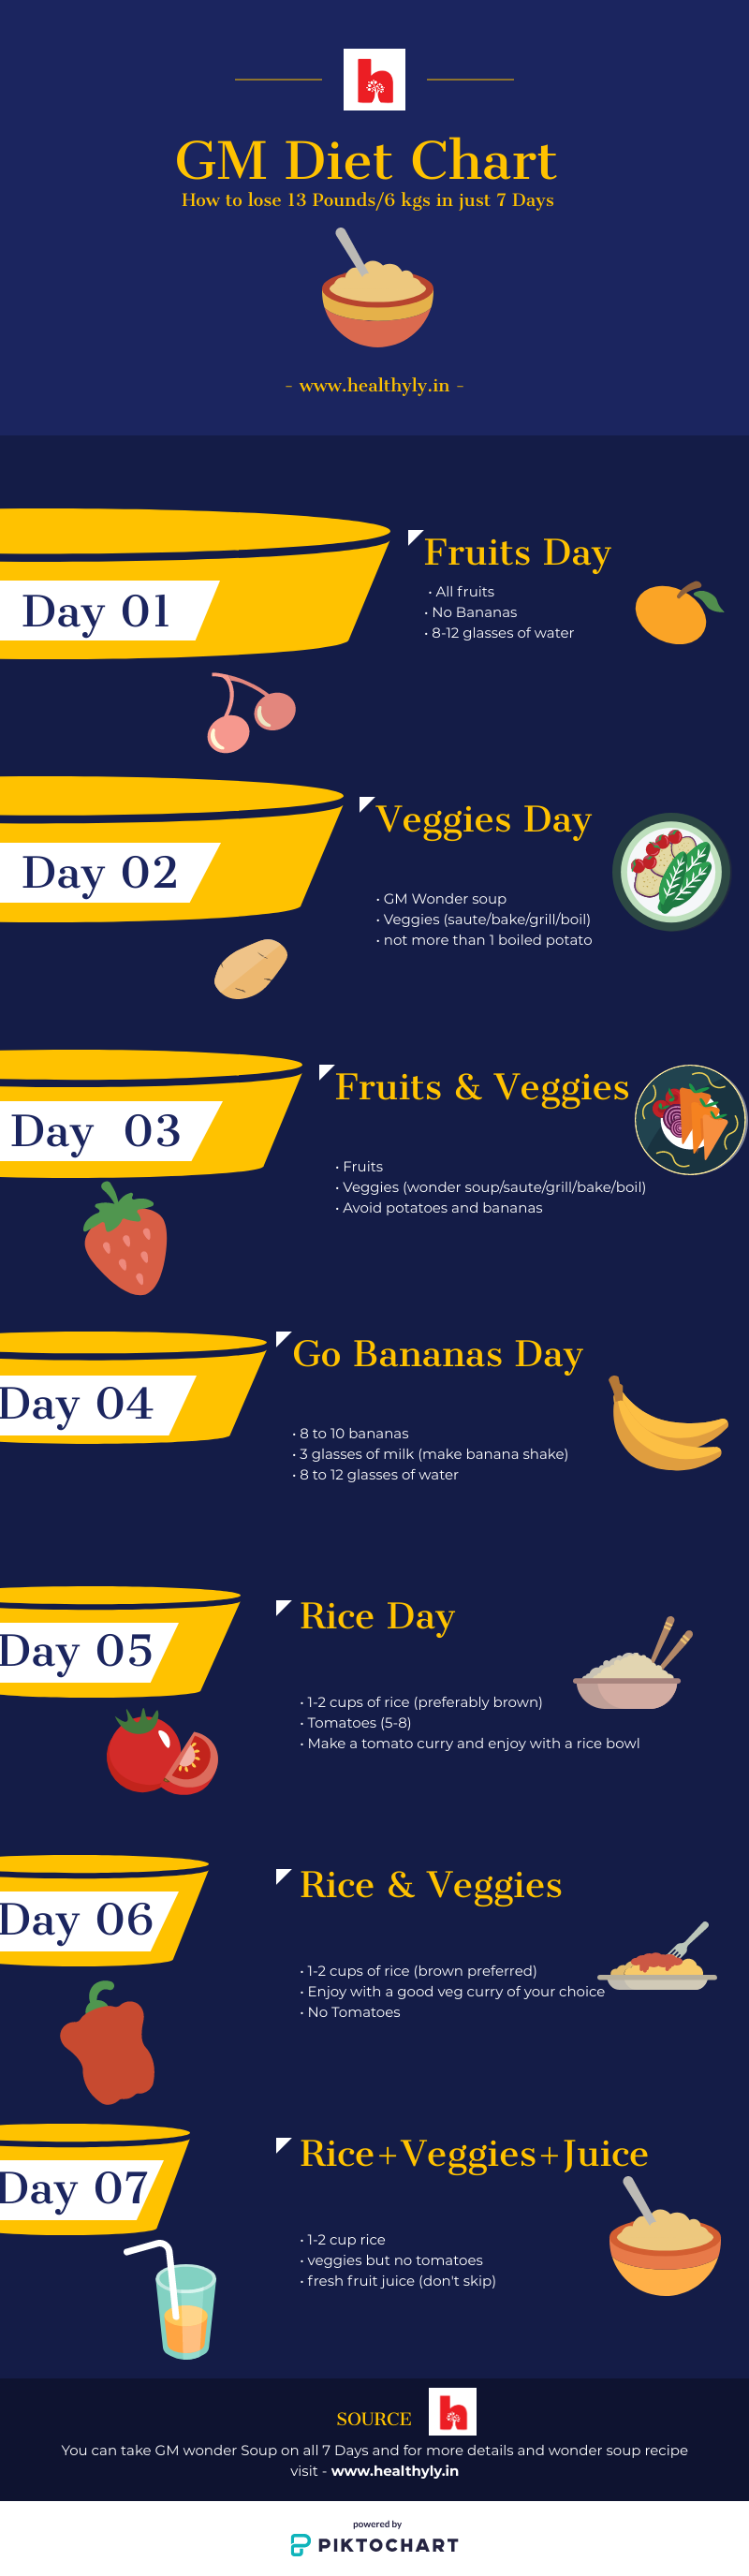 gm diet plan infographic to lose weight